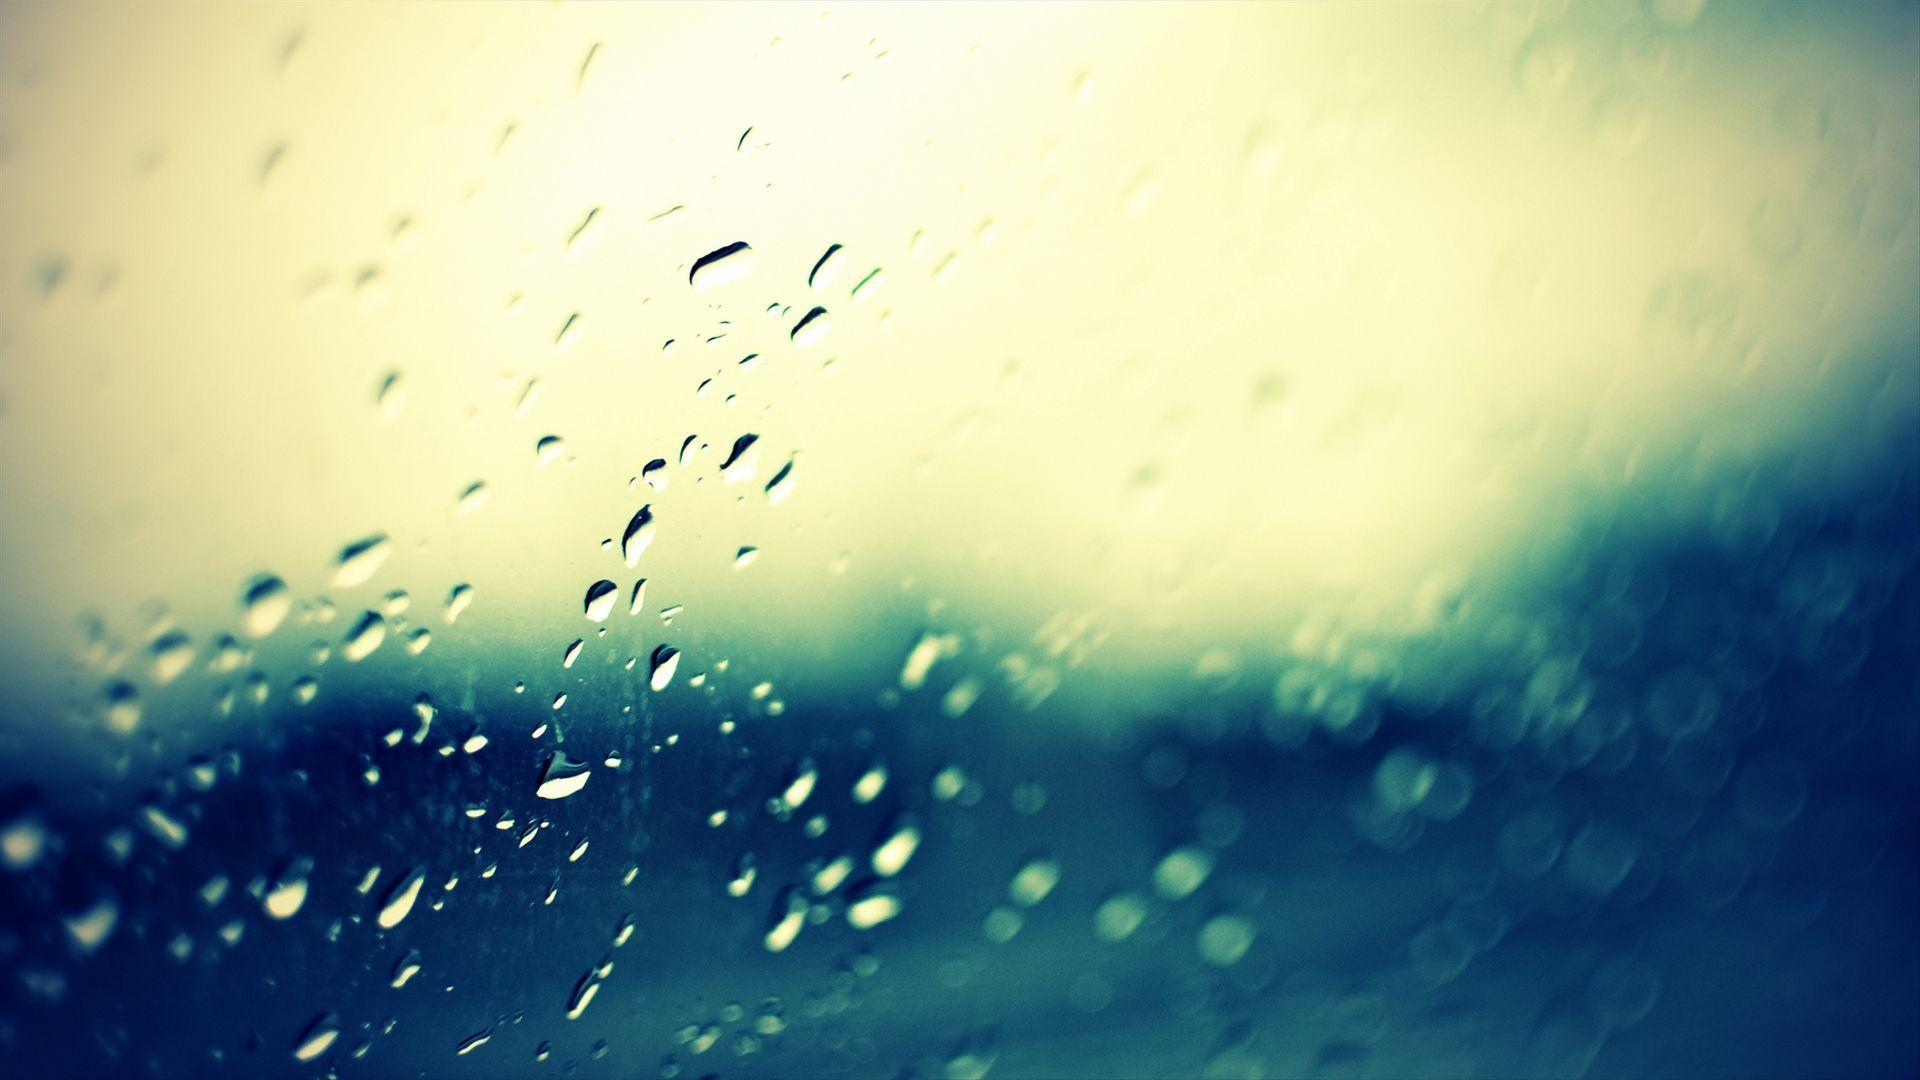 Wallpapers For > Hd Rain Wallpaper For Iphone